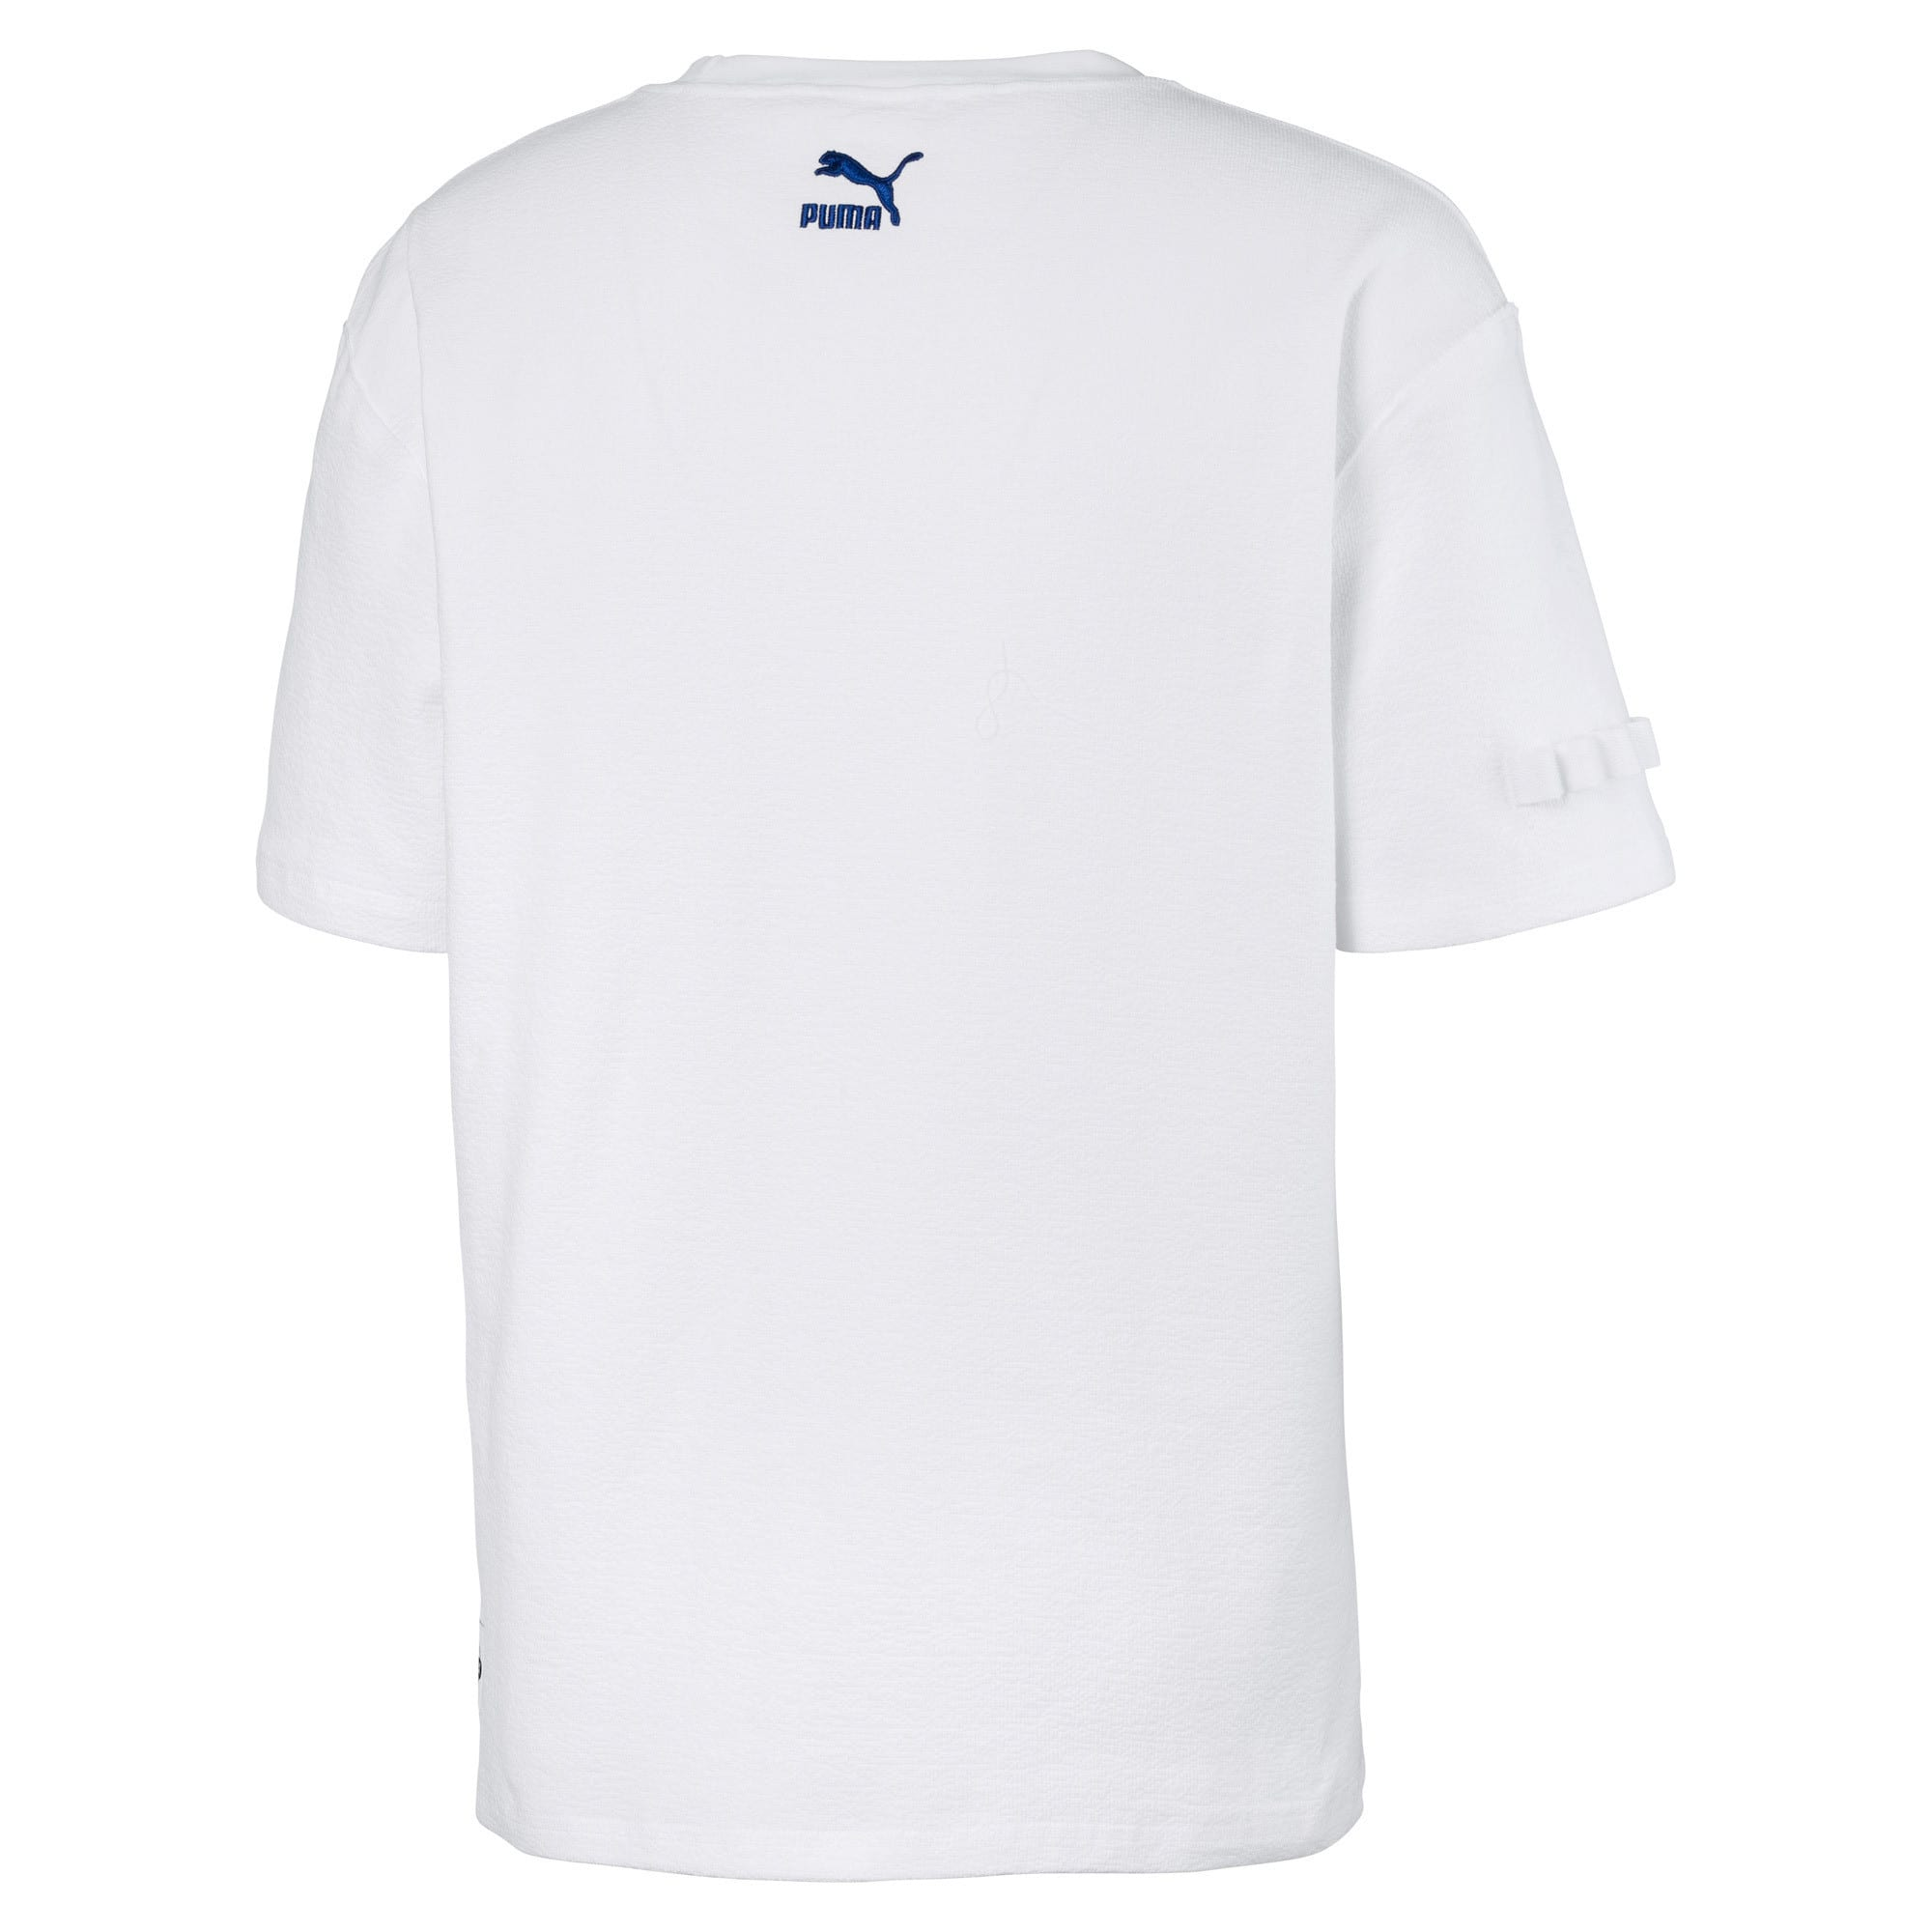 Thumbnail 5 of PUMA x TYAKASHA Tee, Puma White, medium